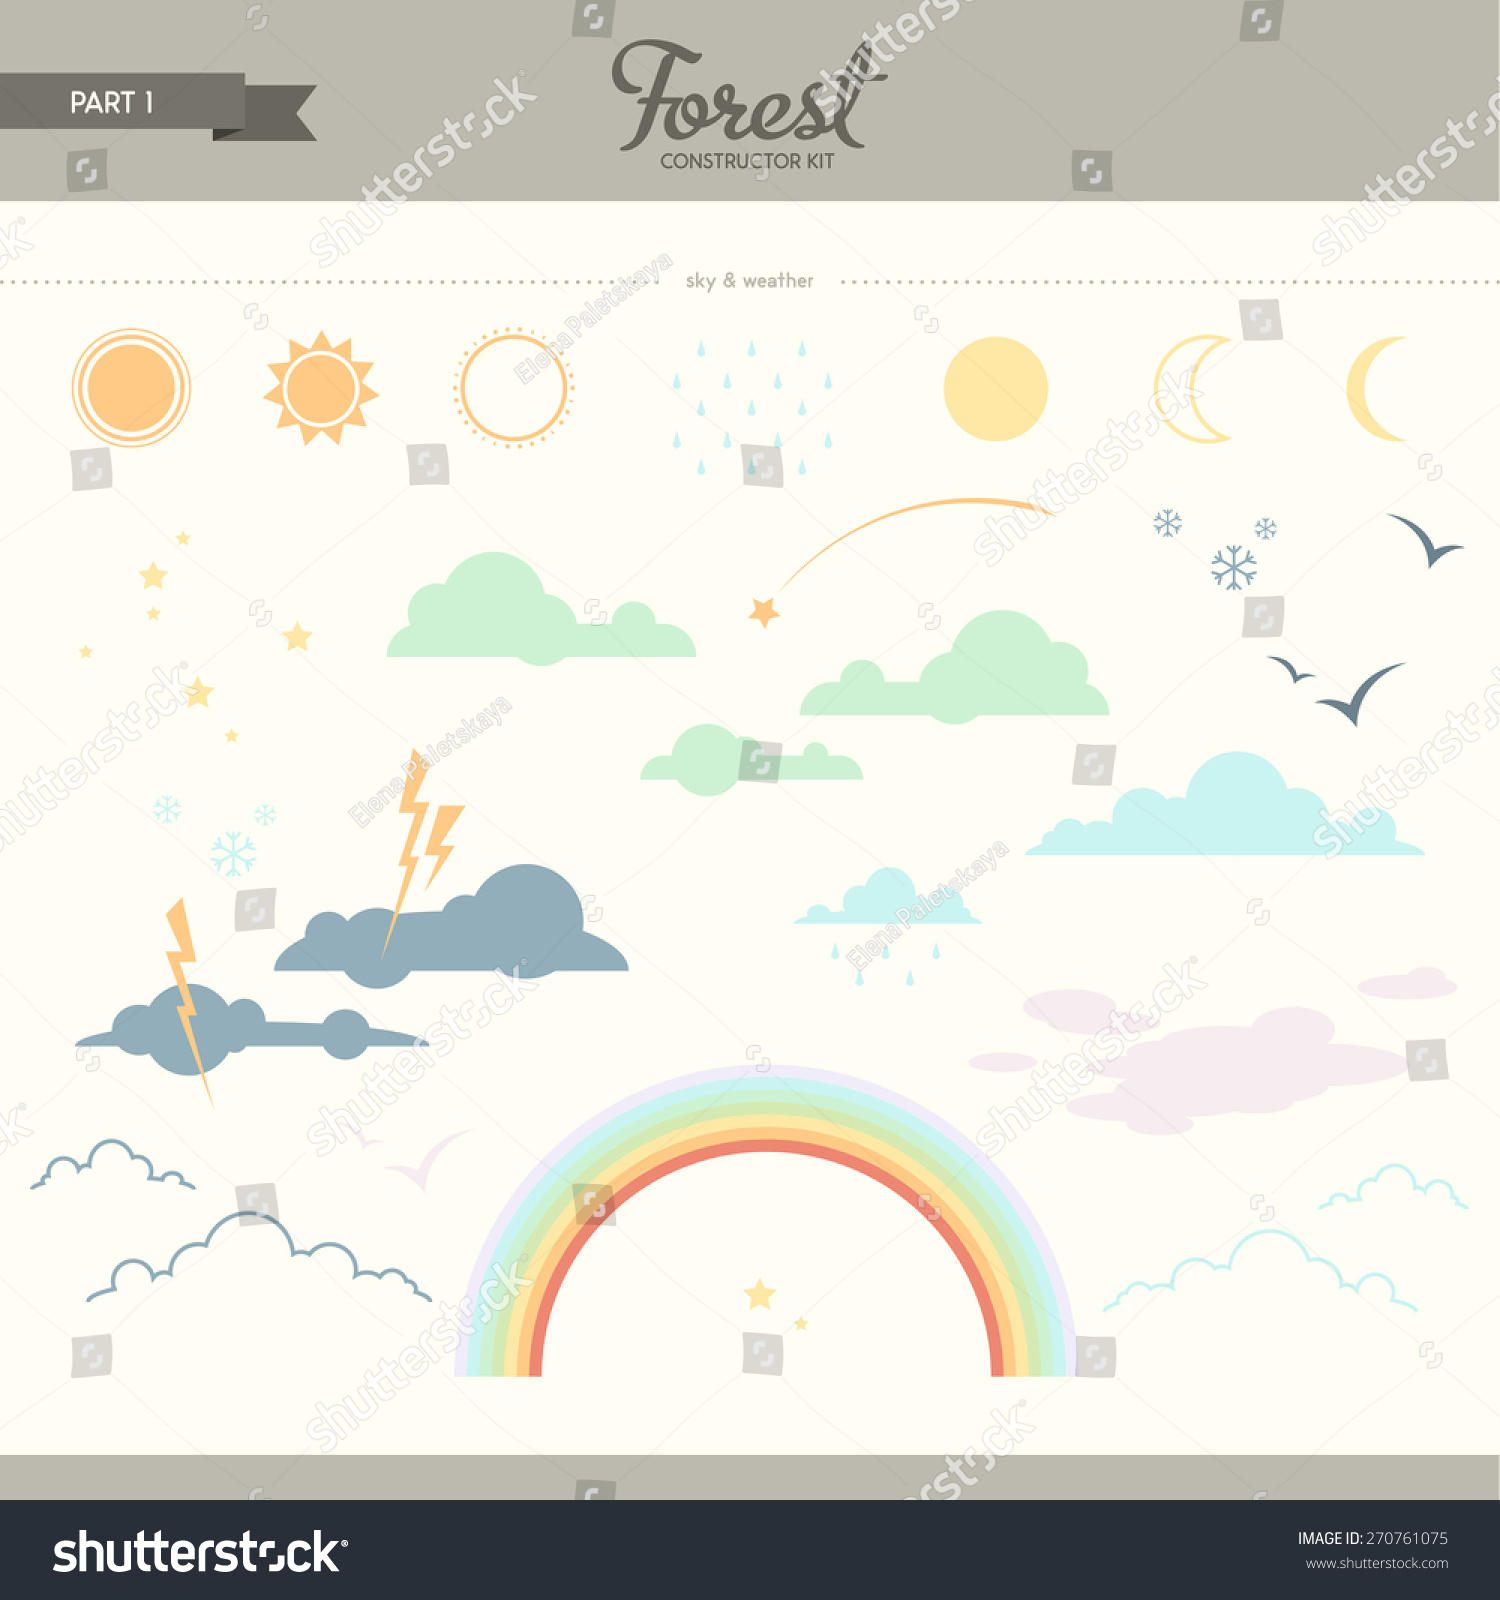 forest kit part 1 sky weather stock vector 270761075. Black Bedroom Furniture Sets. Home Design Ideas